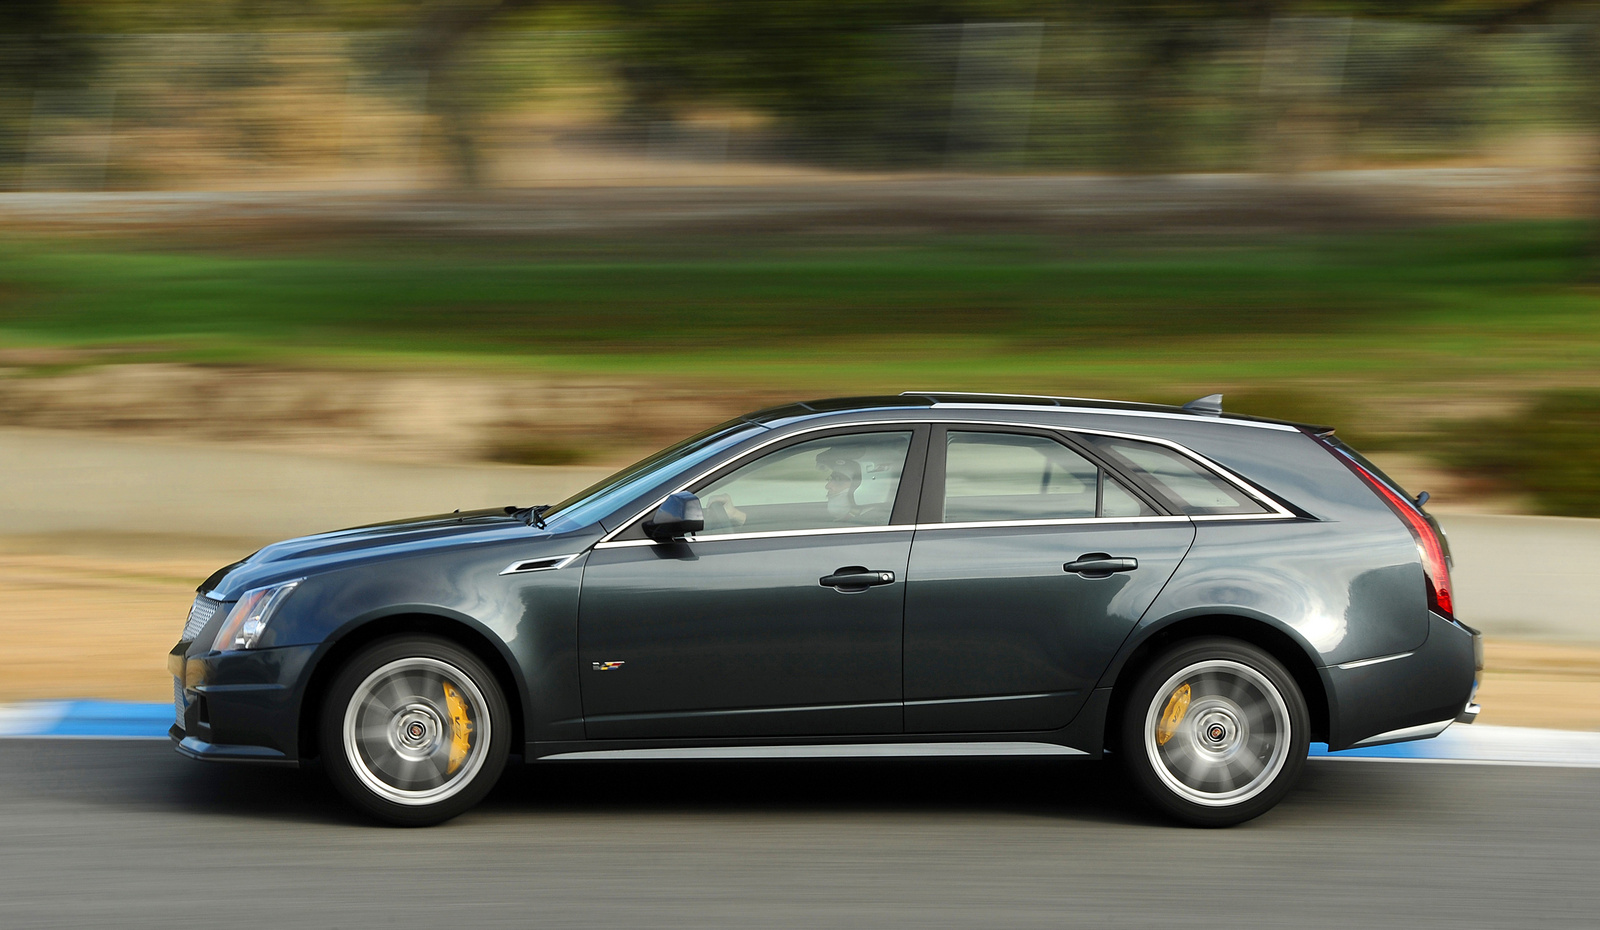 2013 cadillac cts v pictures cargurus. Black Bedroom Furniture Sets. Home Design Ideas